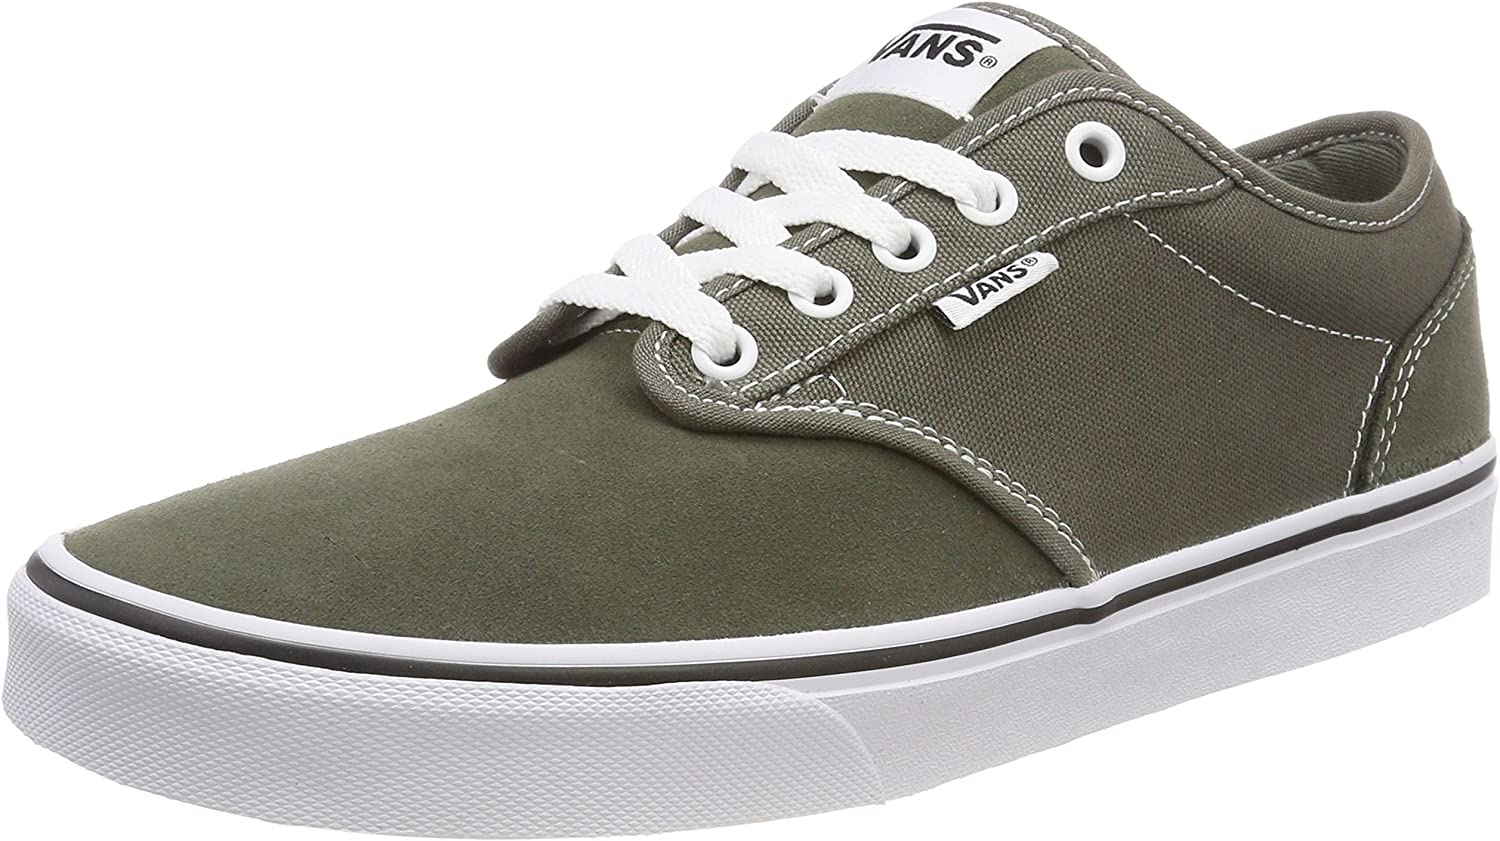 Vans Men's Atwood Canvas Suede Low-Top Sneakers